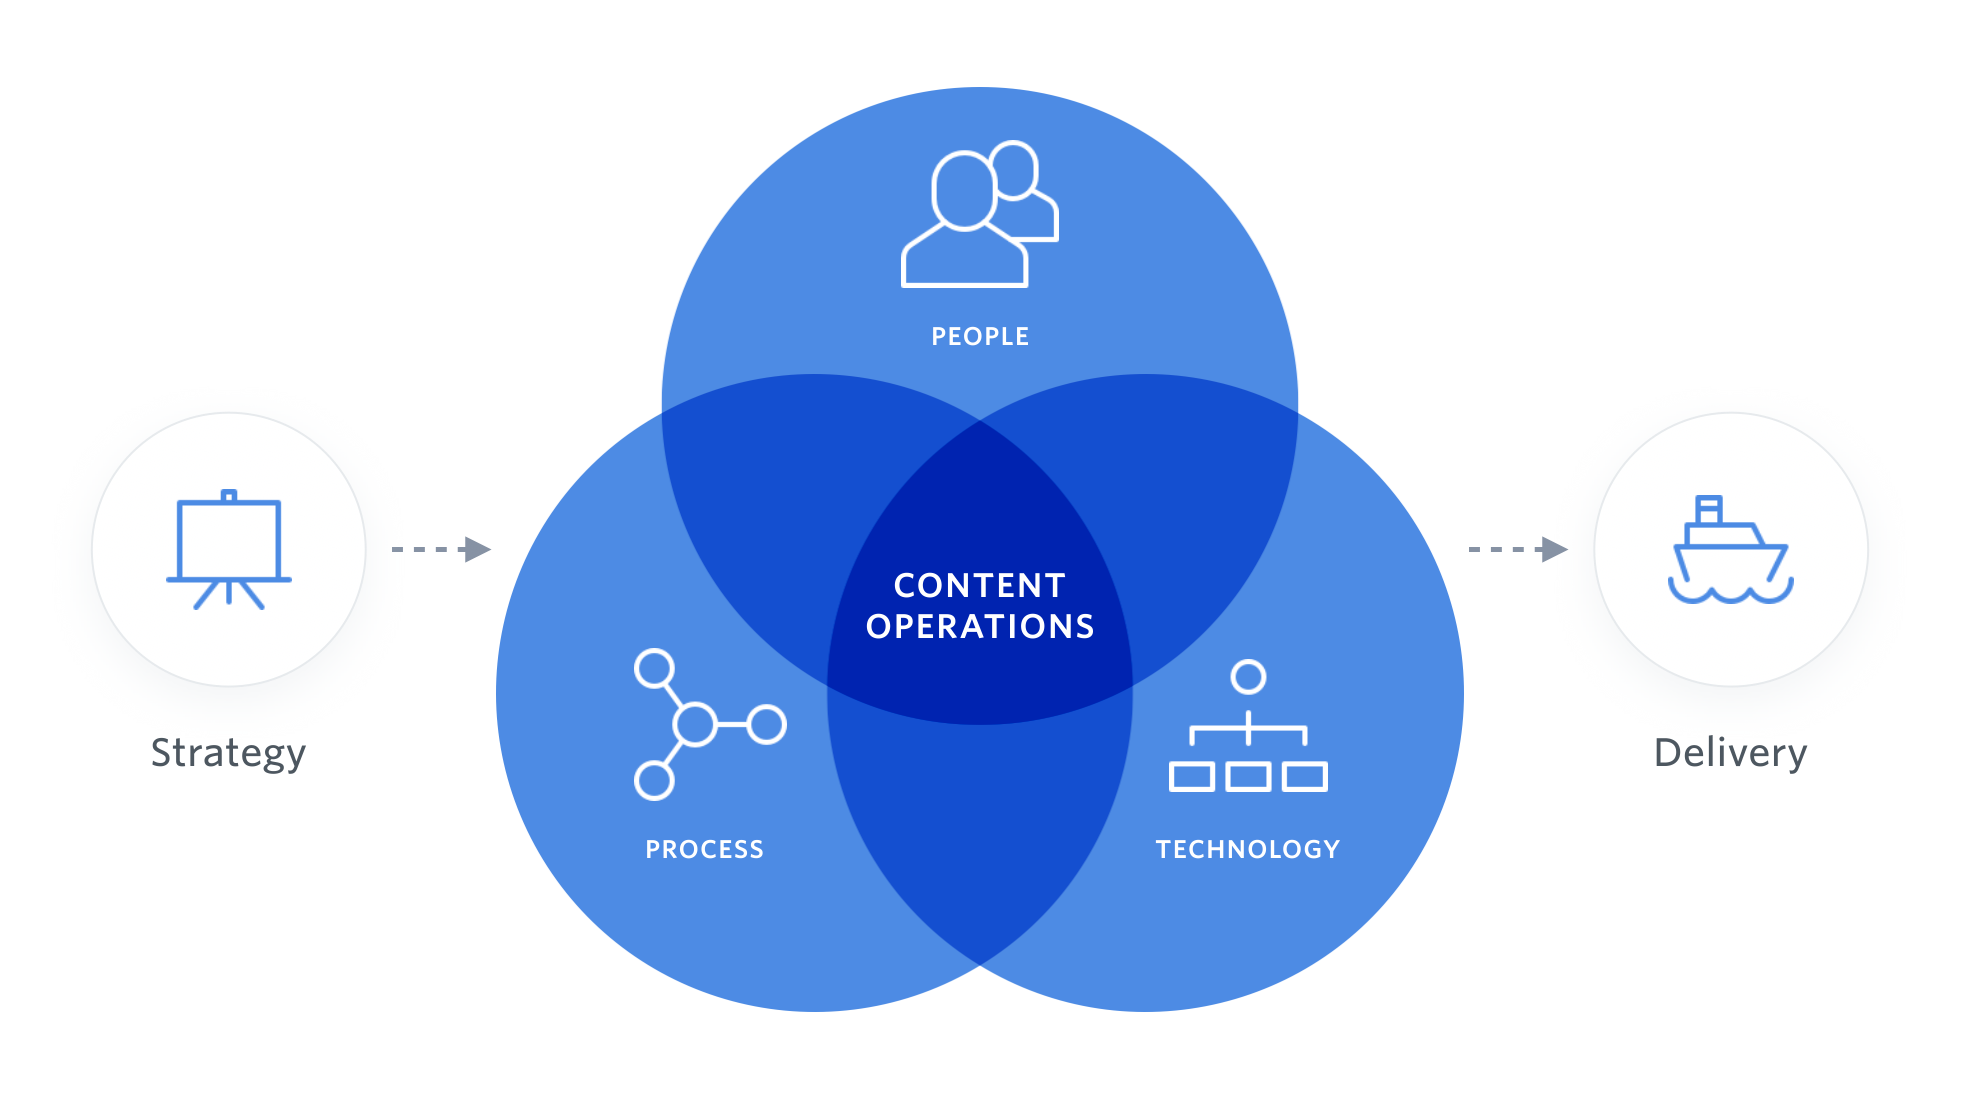 A Venn diagram showing how ContentOps is about people, process and technology from strategy all the way through to delivery